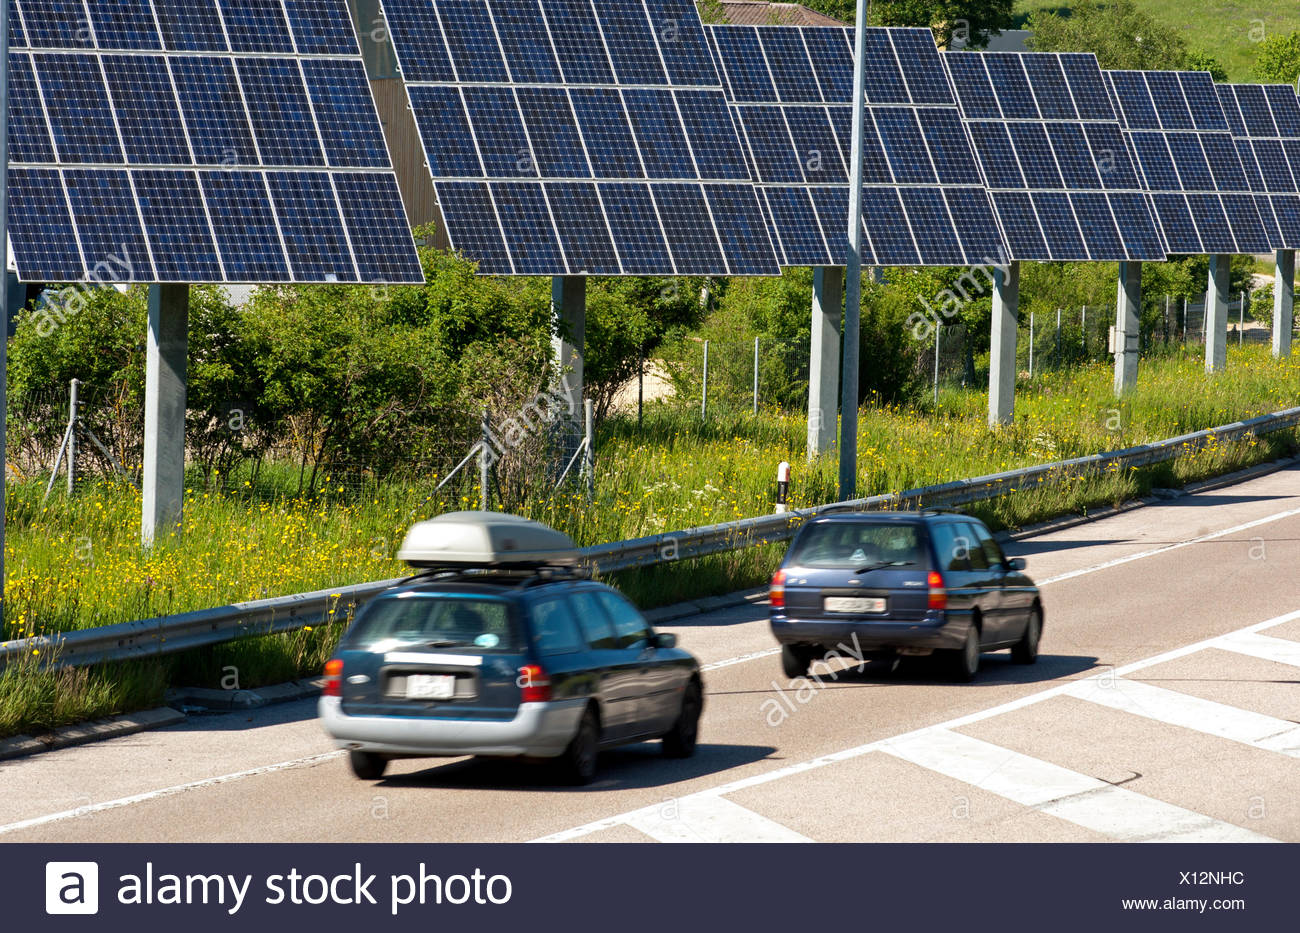 Photovoltaic modules along a country road in the Swiss Jura near La-Chaux-de-Fonds, Canton of Neuchâtel, Switzerland, Europe - Stock Image